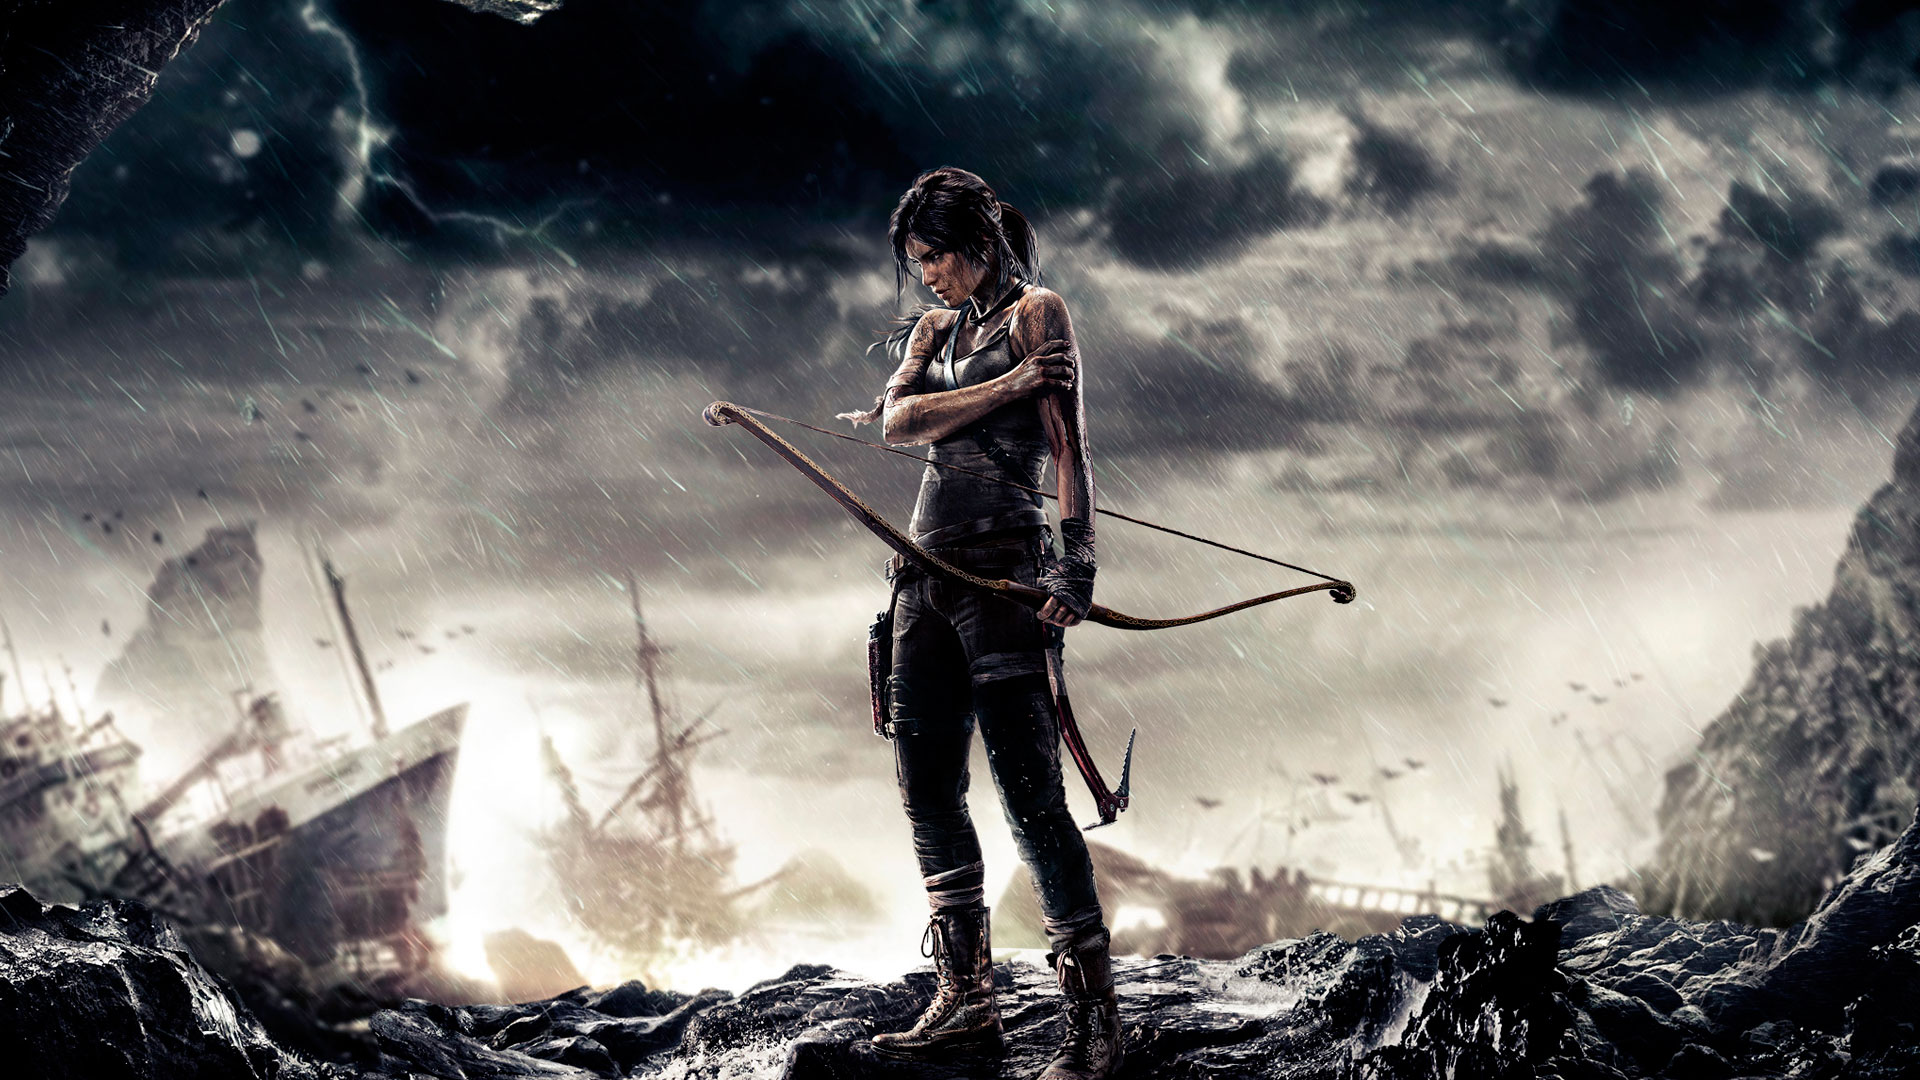 http-www-shunvmall-com-data-out-tomb-raider-wallpaper-wpc5806107